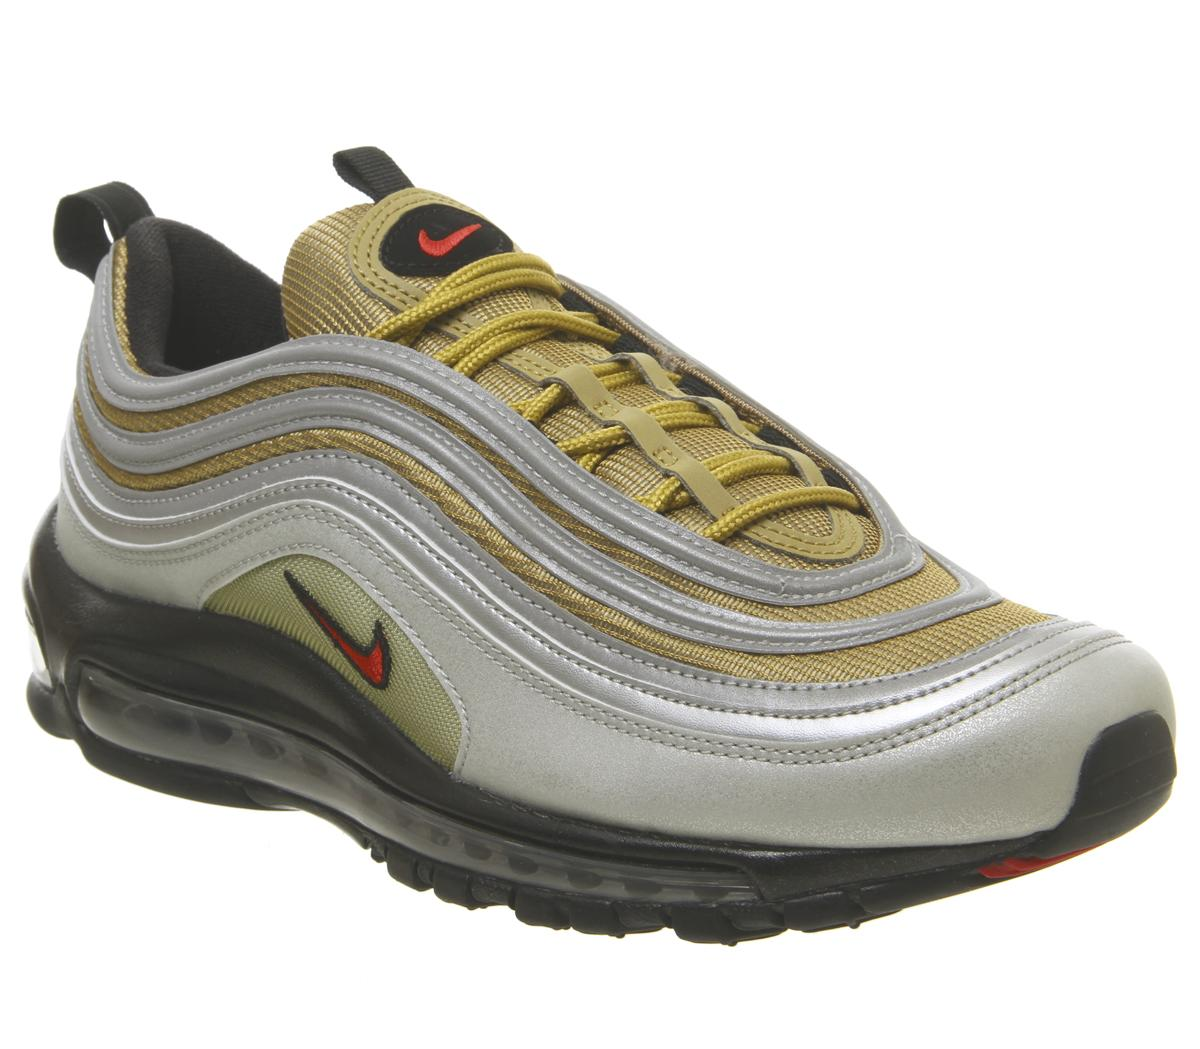 Nike Air Max 97 Trainers Silver Gold Black - Sneaker herren